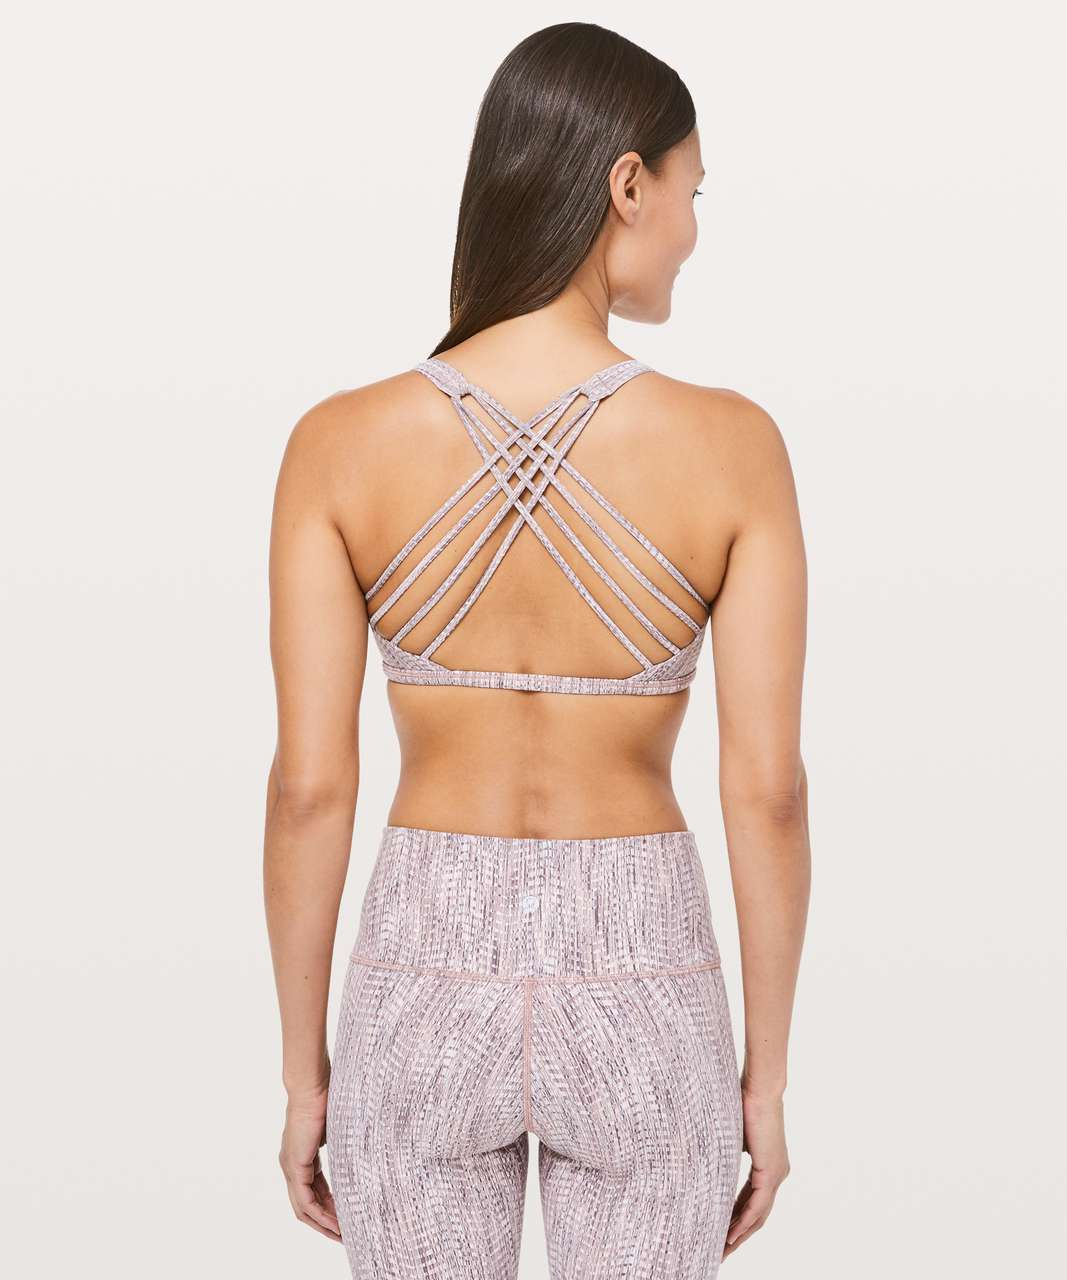 Lululemon Free To Be Bra (Wild) - Arrow Jacquard Antique Bark Copper Coil